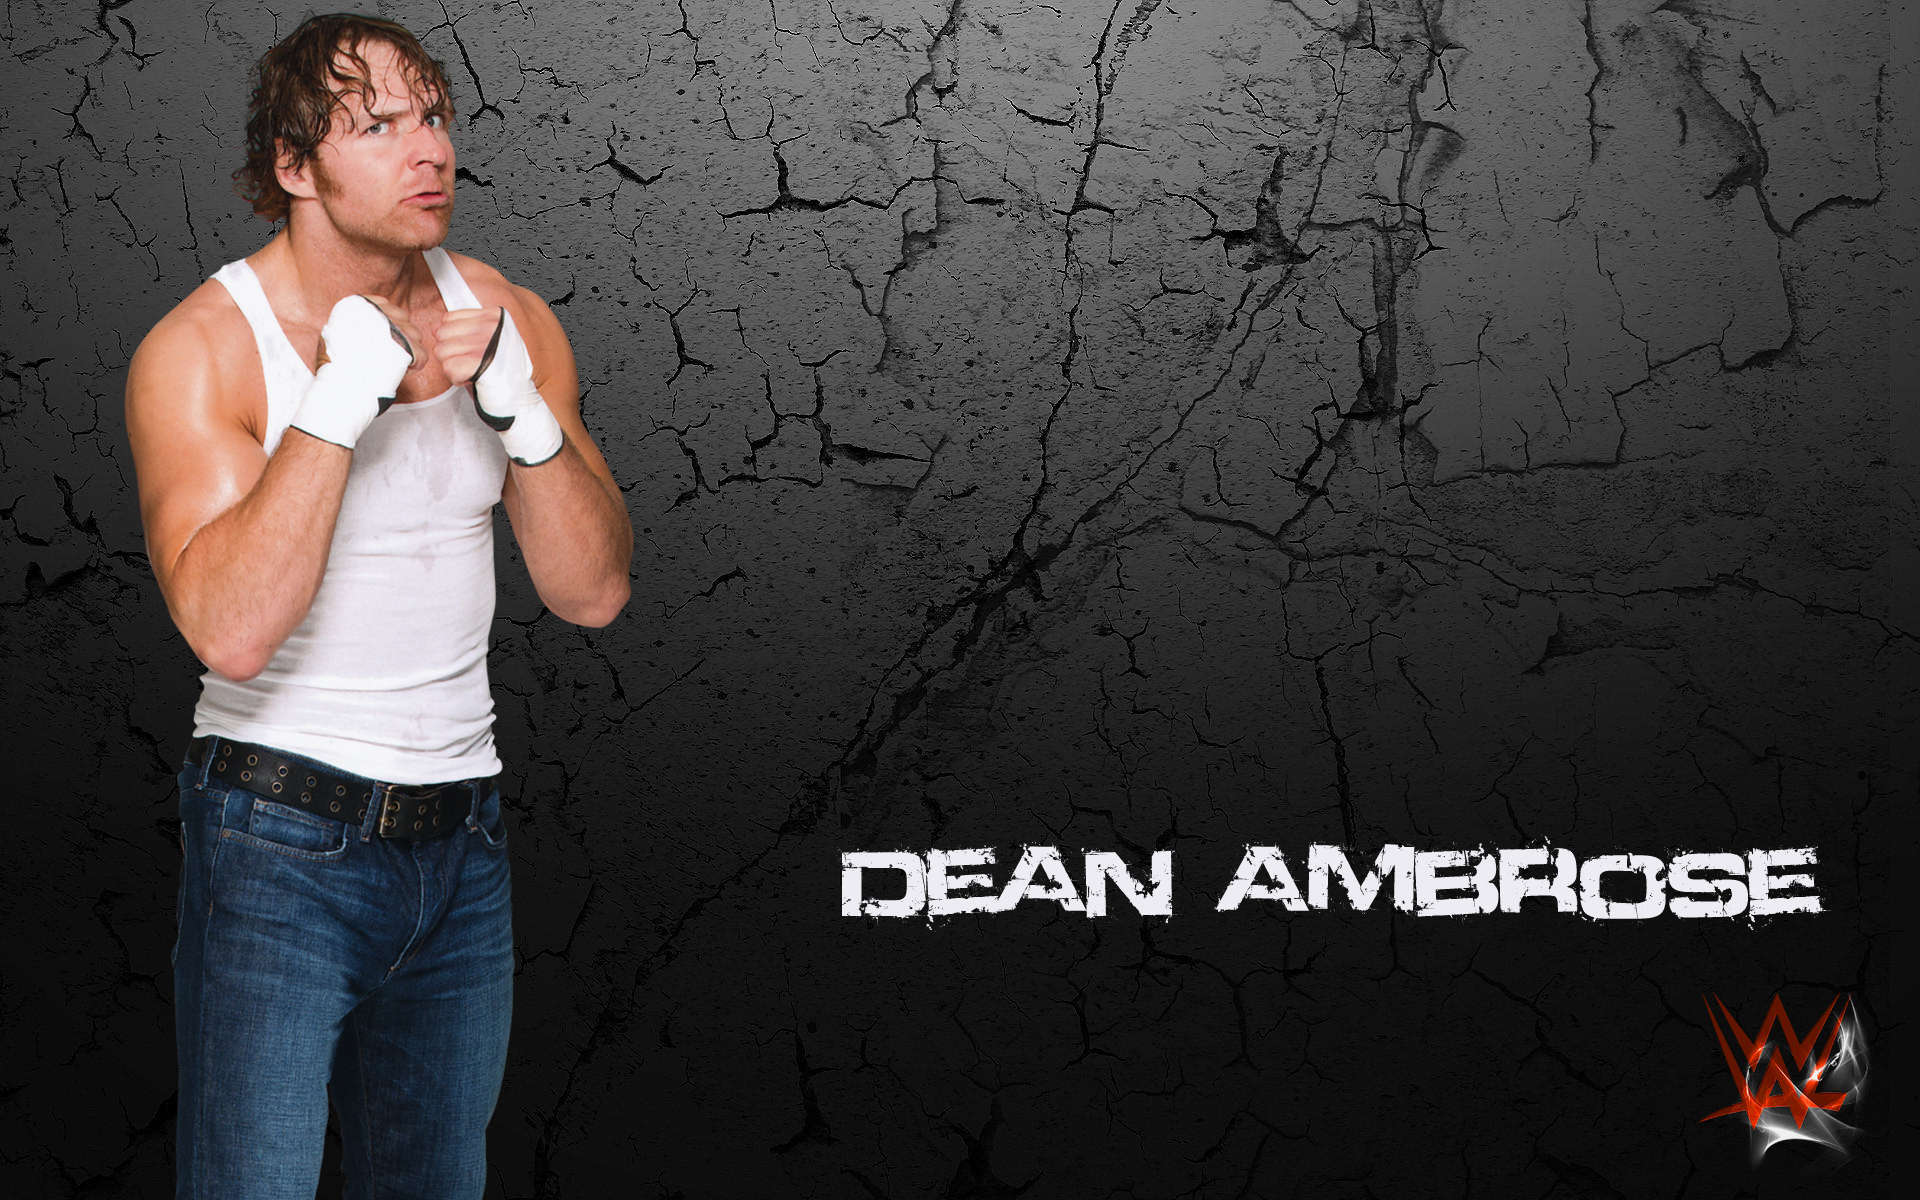 WWE Dean Ambrose Wallpaper HD Pictures